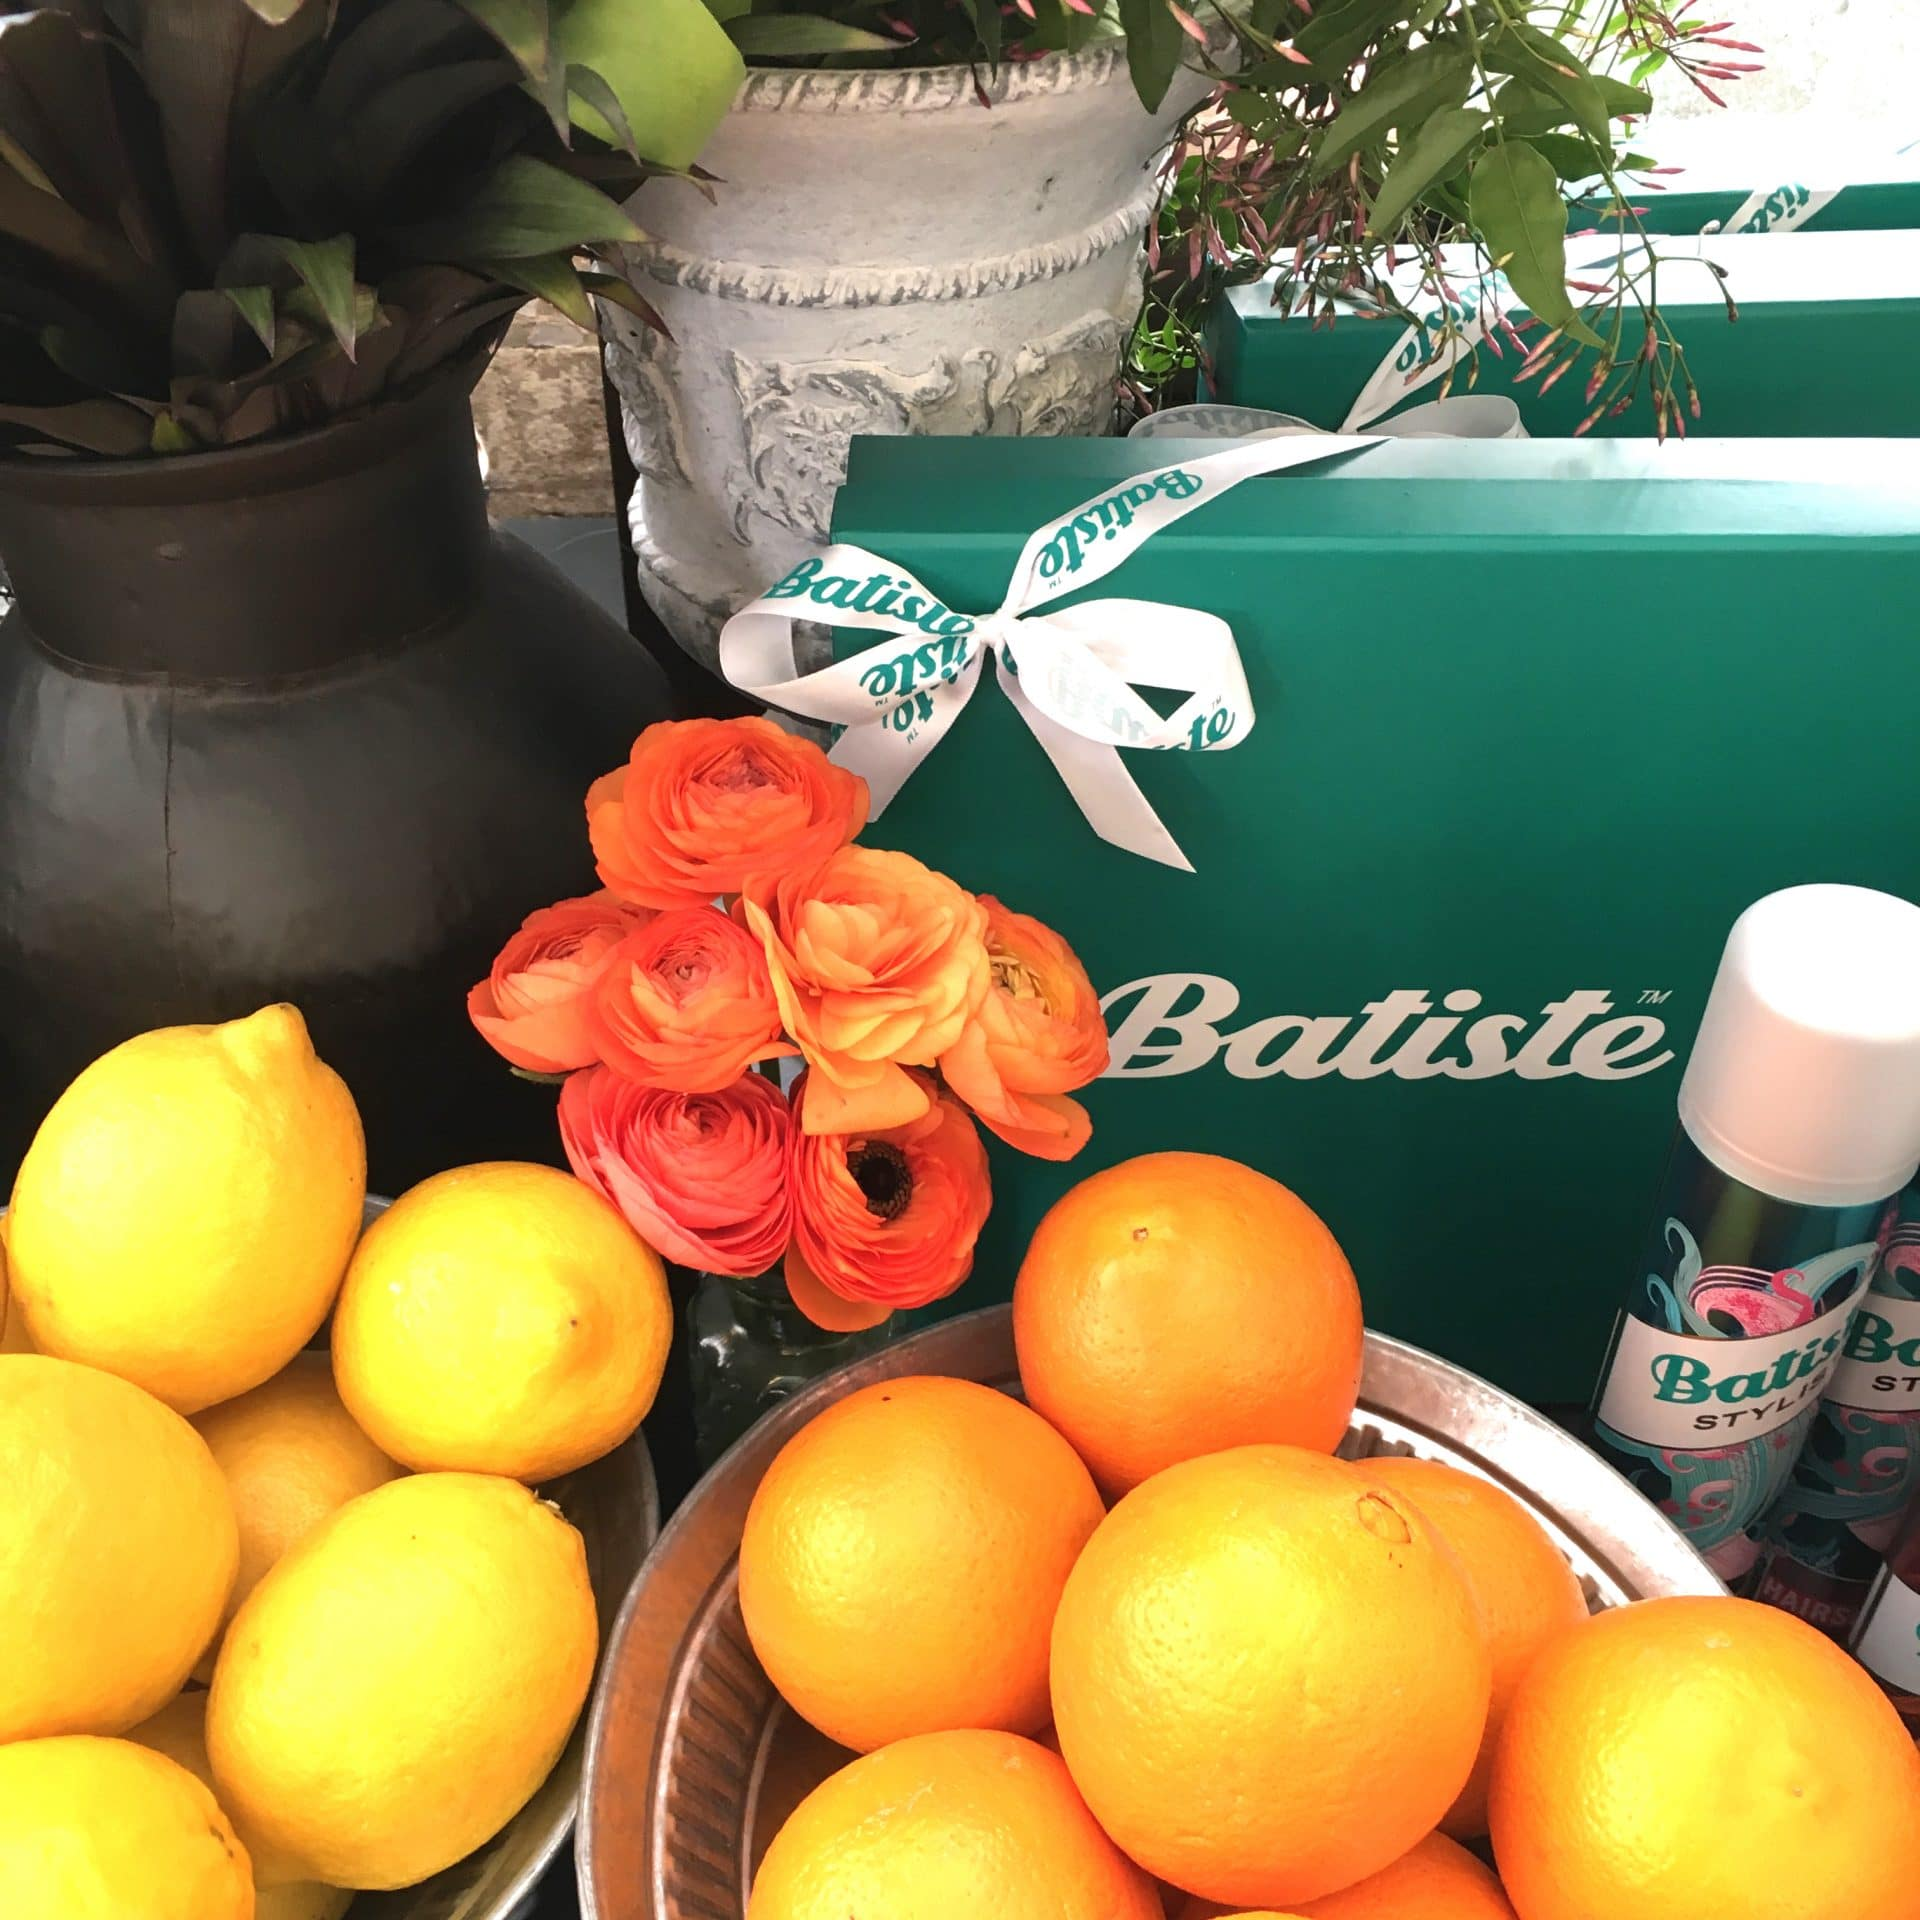 flowers-at-batiste-launch-2